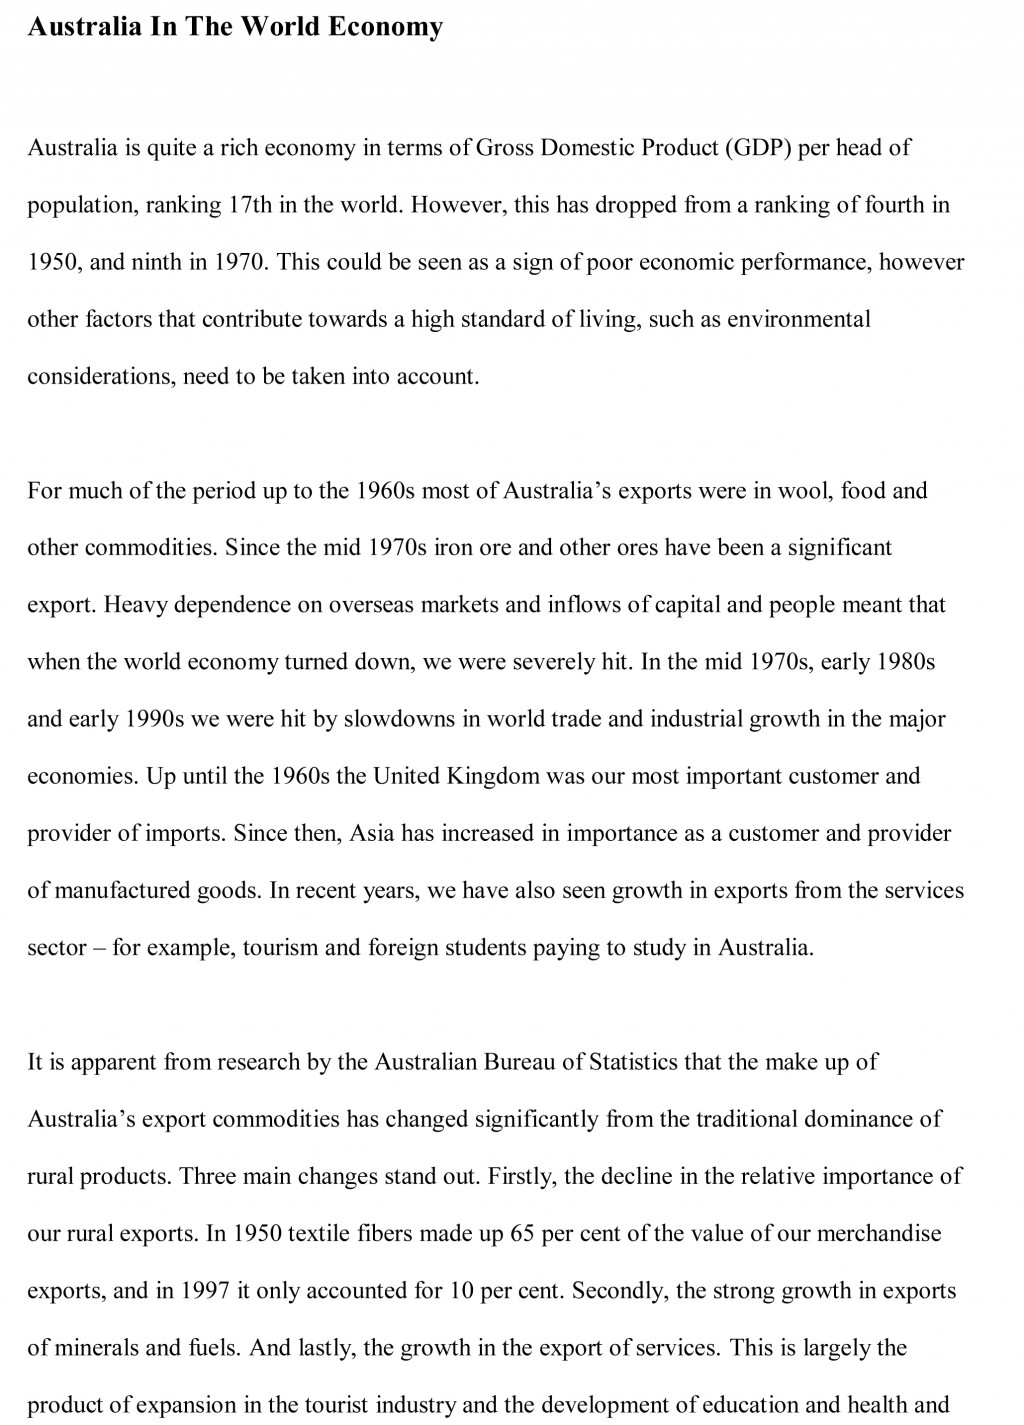 005 Free Write Essay Example Economics Archaicawful Writing Prompts Examples Website To Essays Large